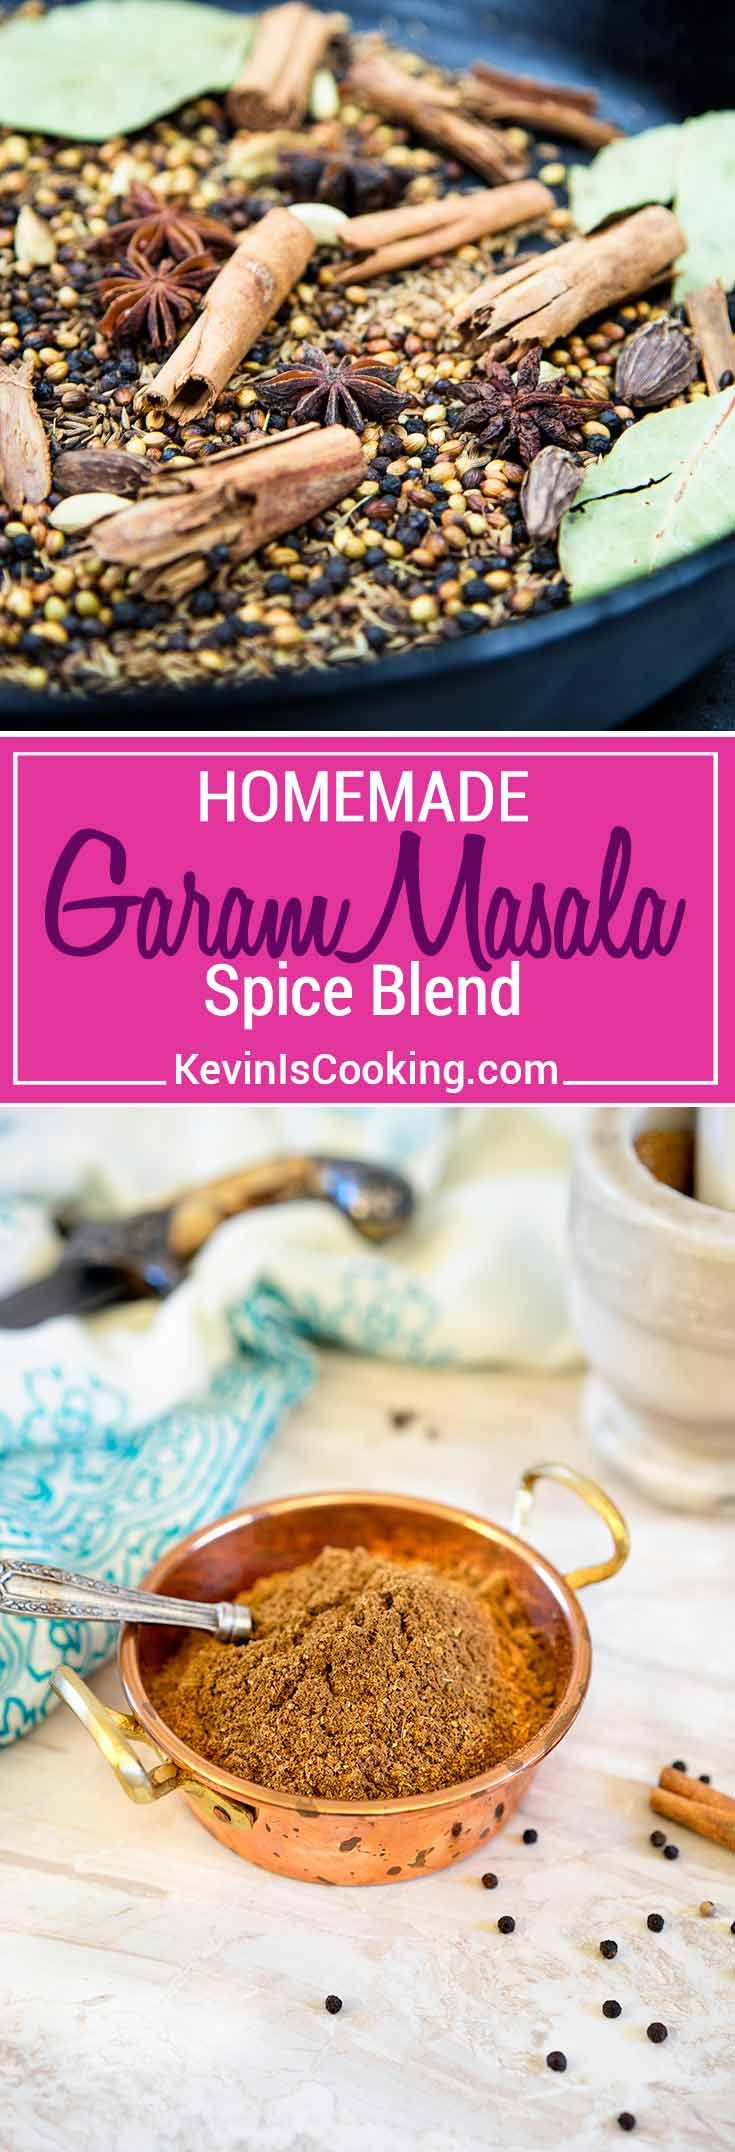 This Indian Garam Masala Spice Blend is an exotic mix of warm spices. I show you how to make it with most pantry spices or purchased from bin markets.